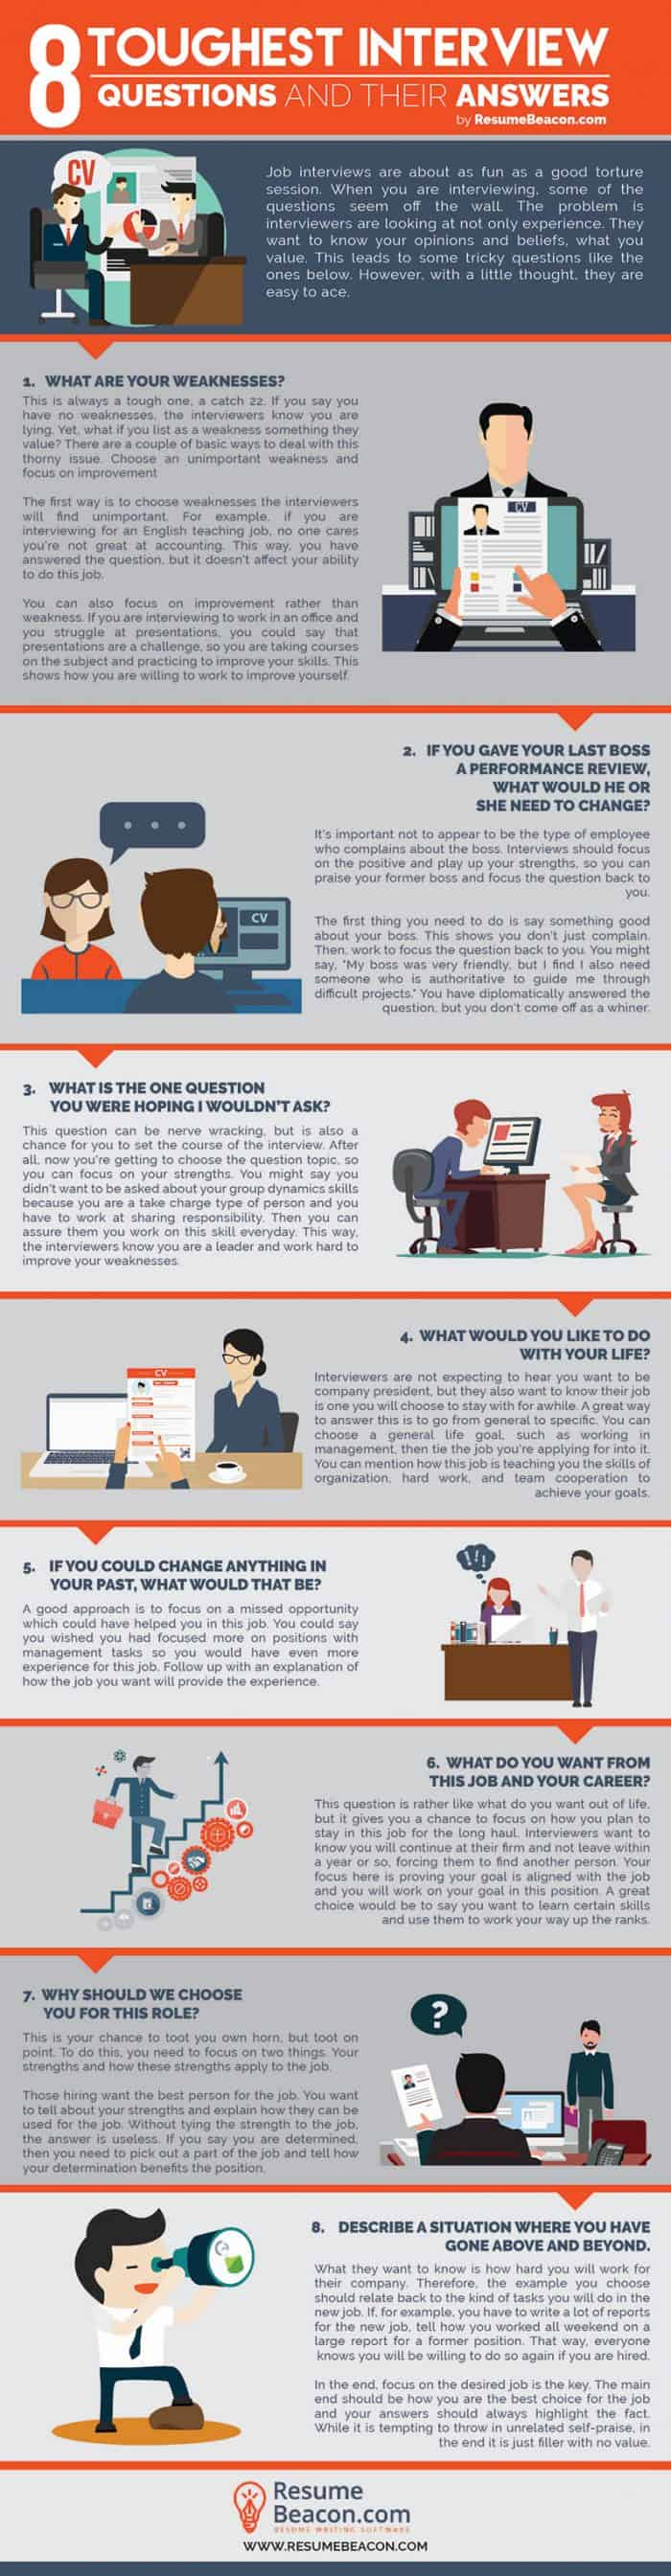 Infographic with 8 questions and answers for though job interview questions.